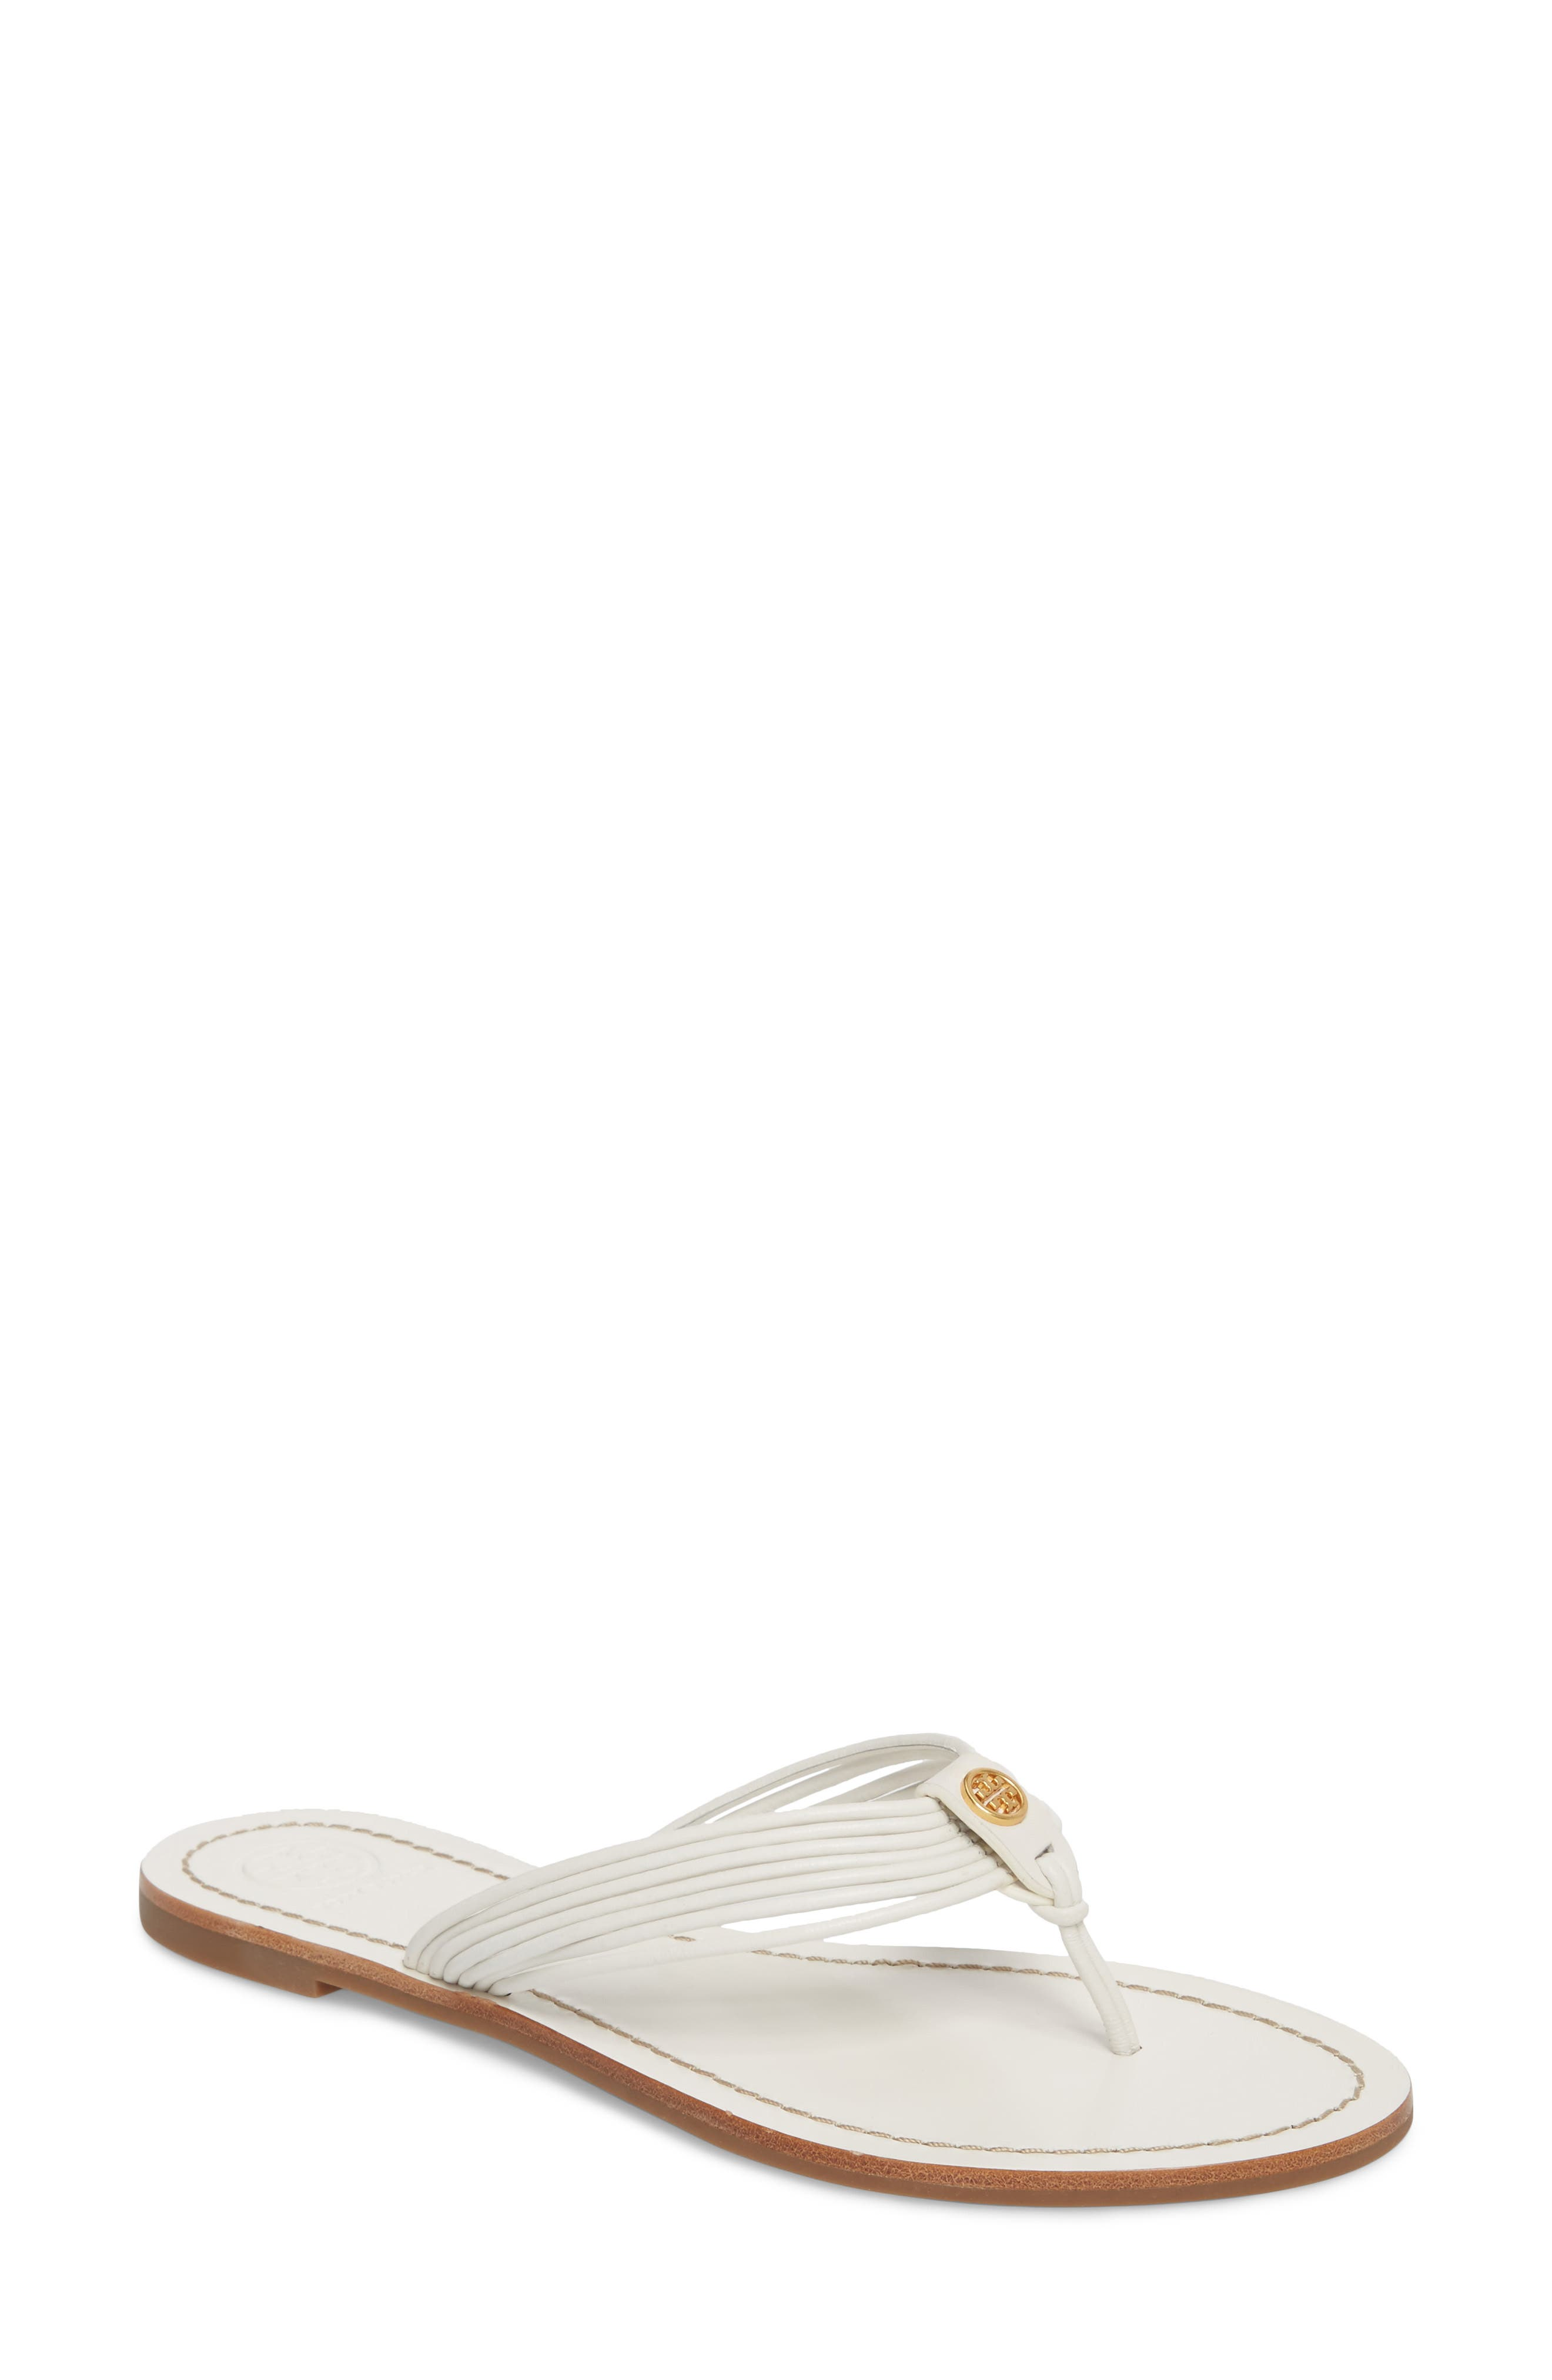 Sienna Strappy Thong Sandal,                         Main,                         color, Perfect White/ Perfect White